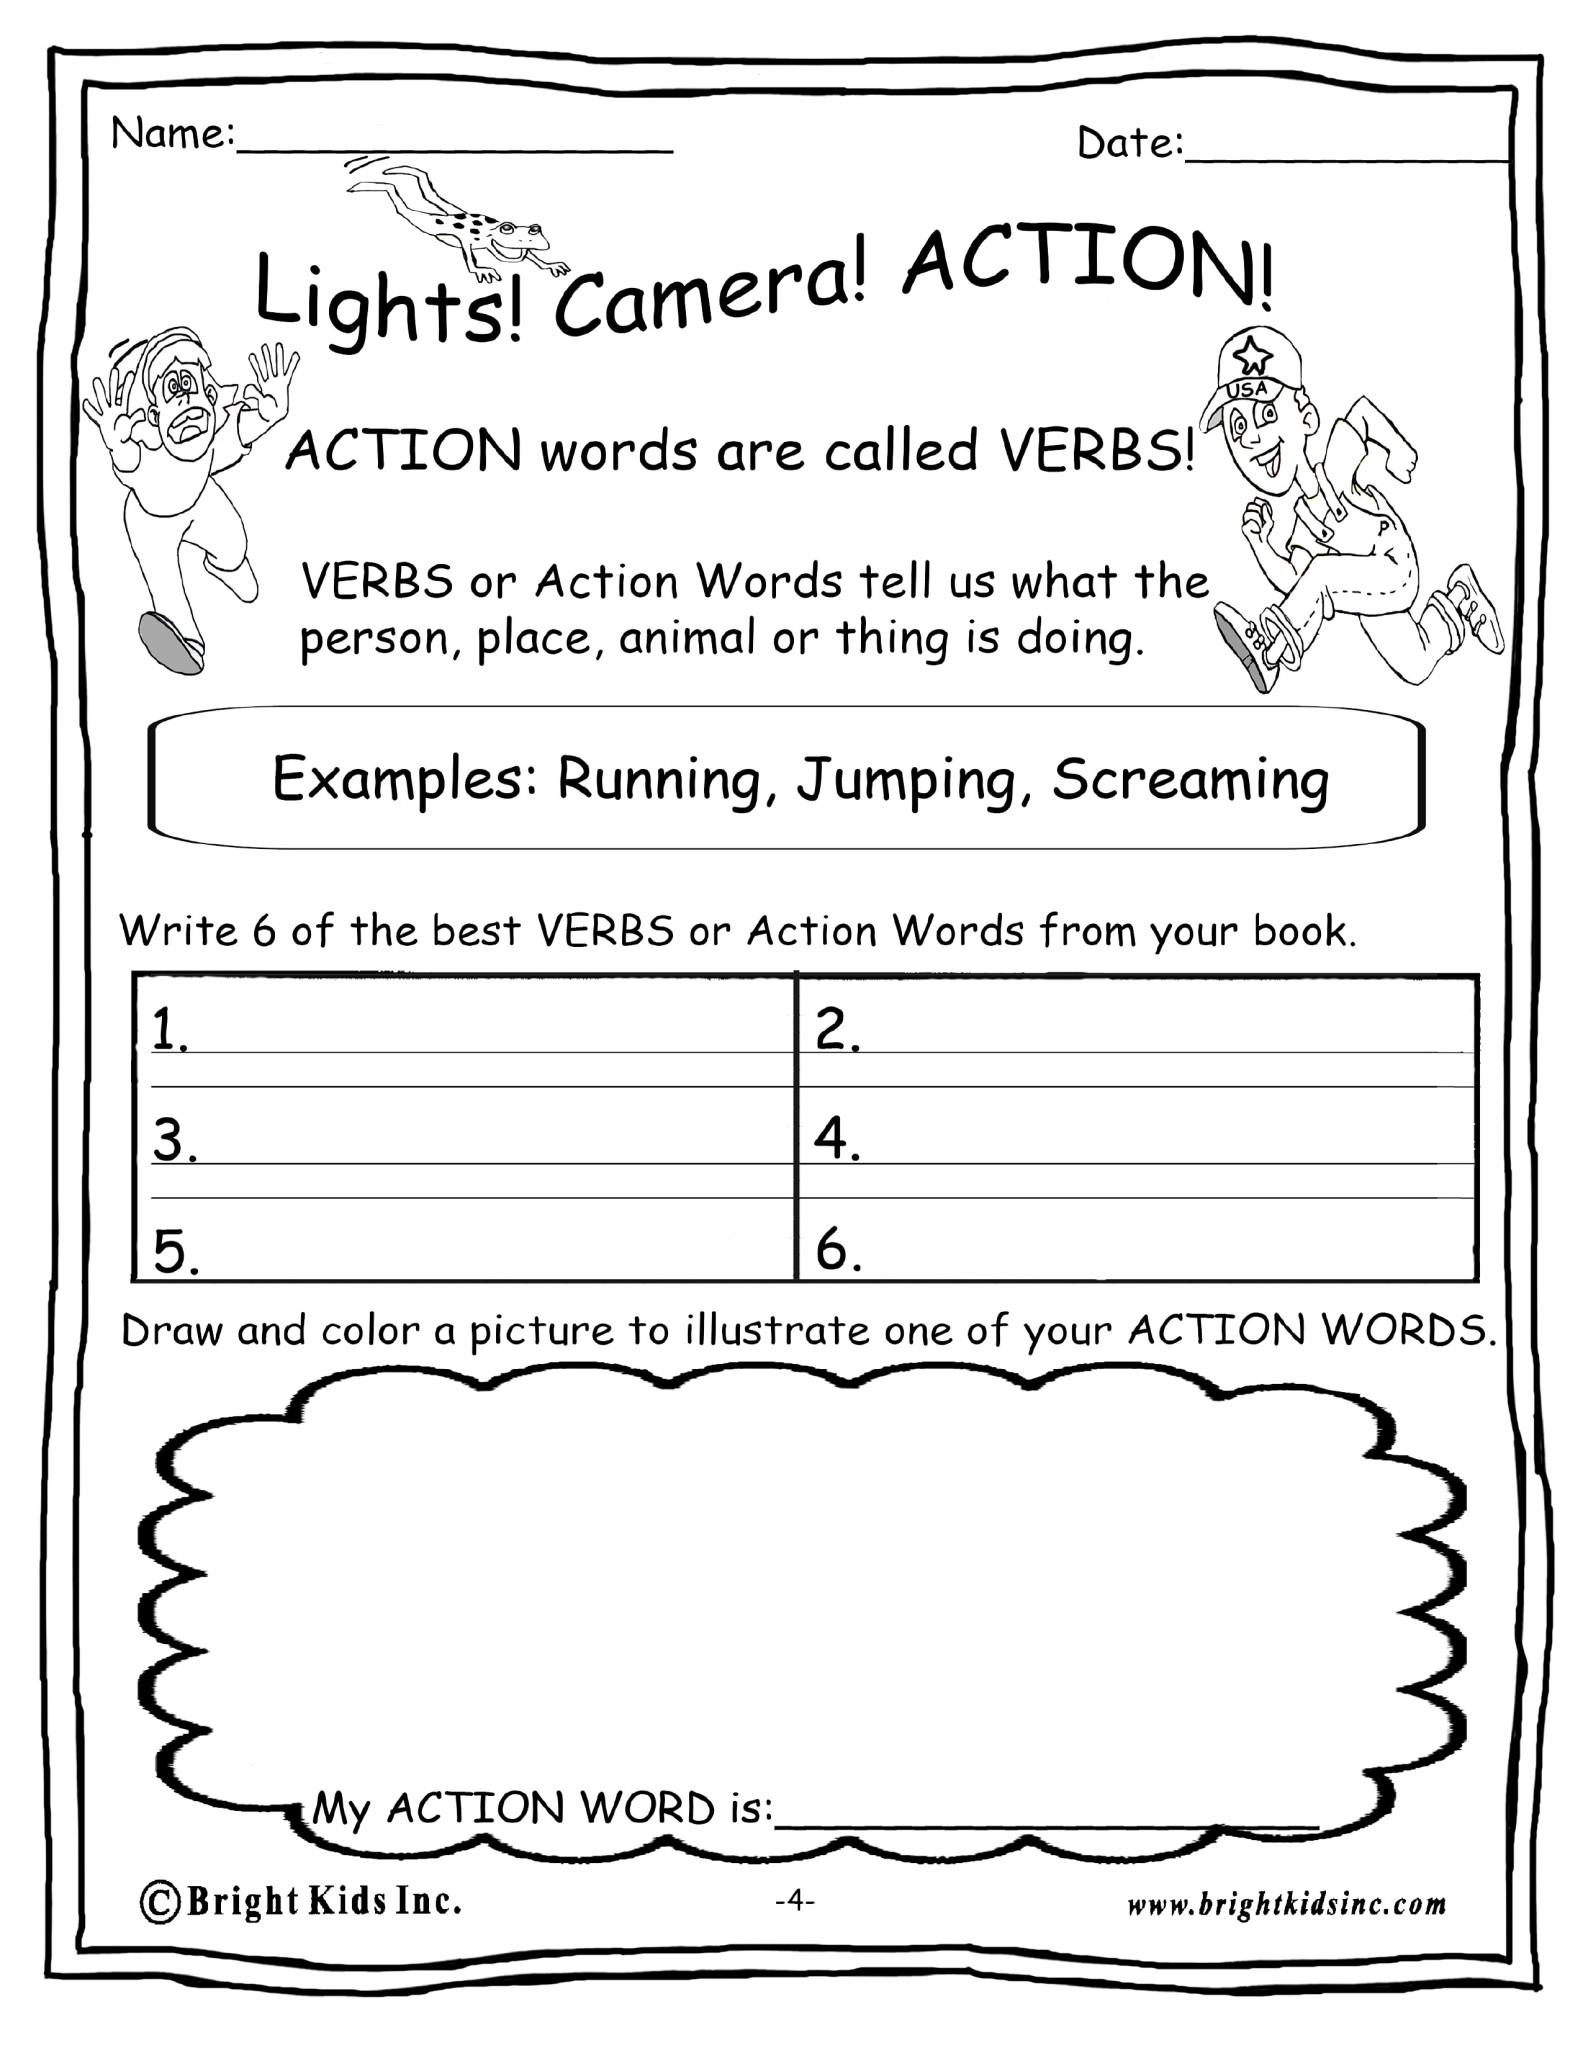 Bright Kids Book Report Activities